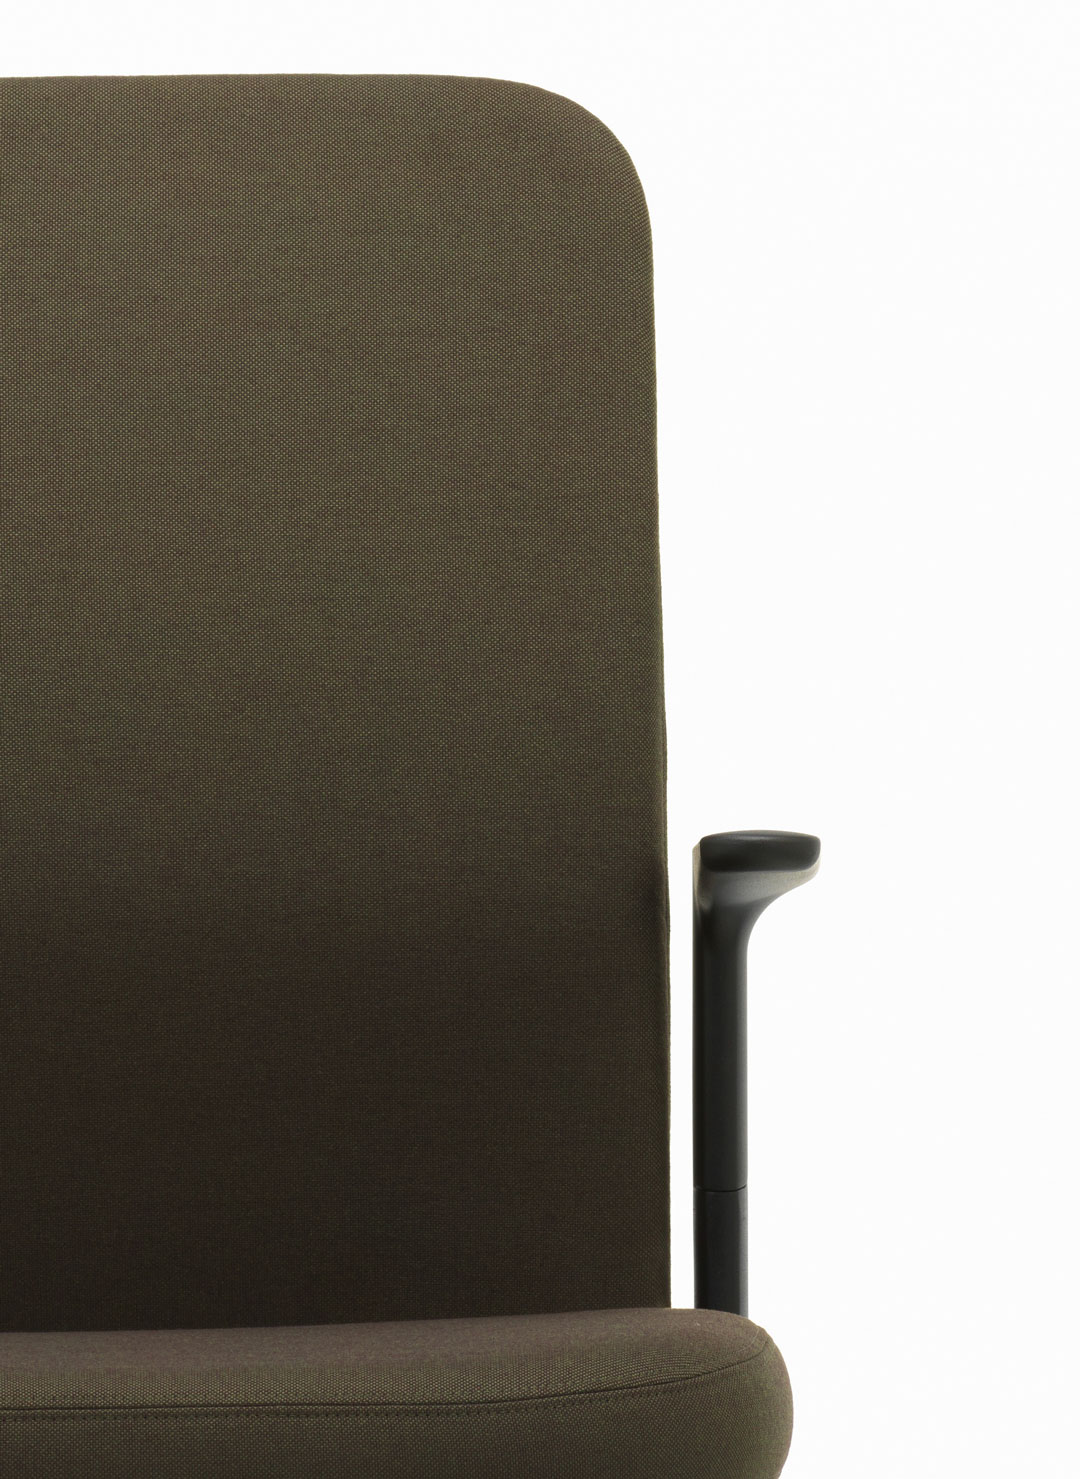 Pacific Chair fixed arm rest, Vitra, 2016